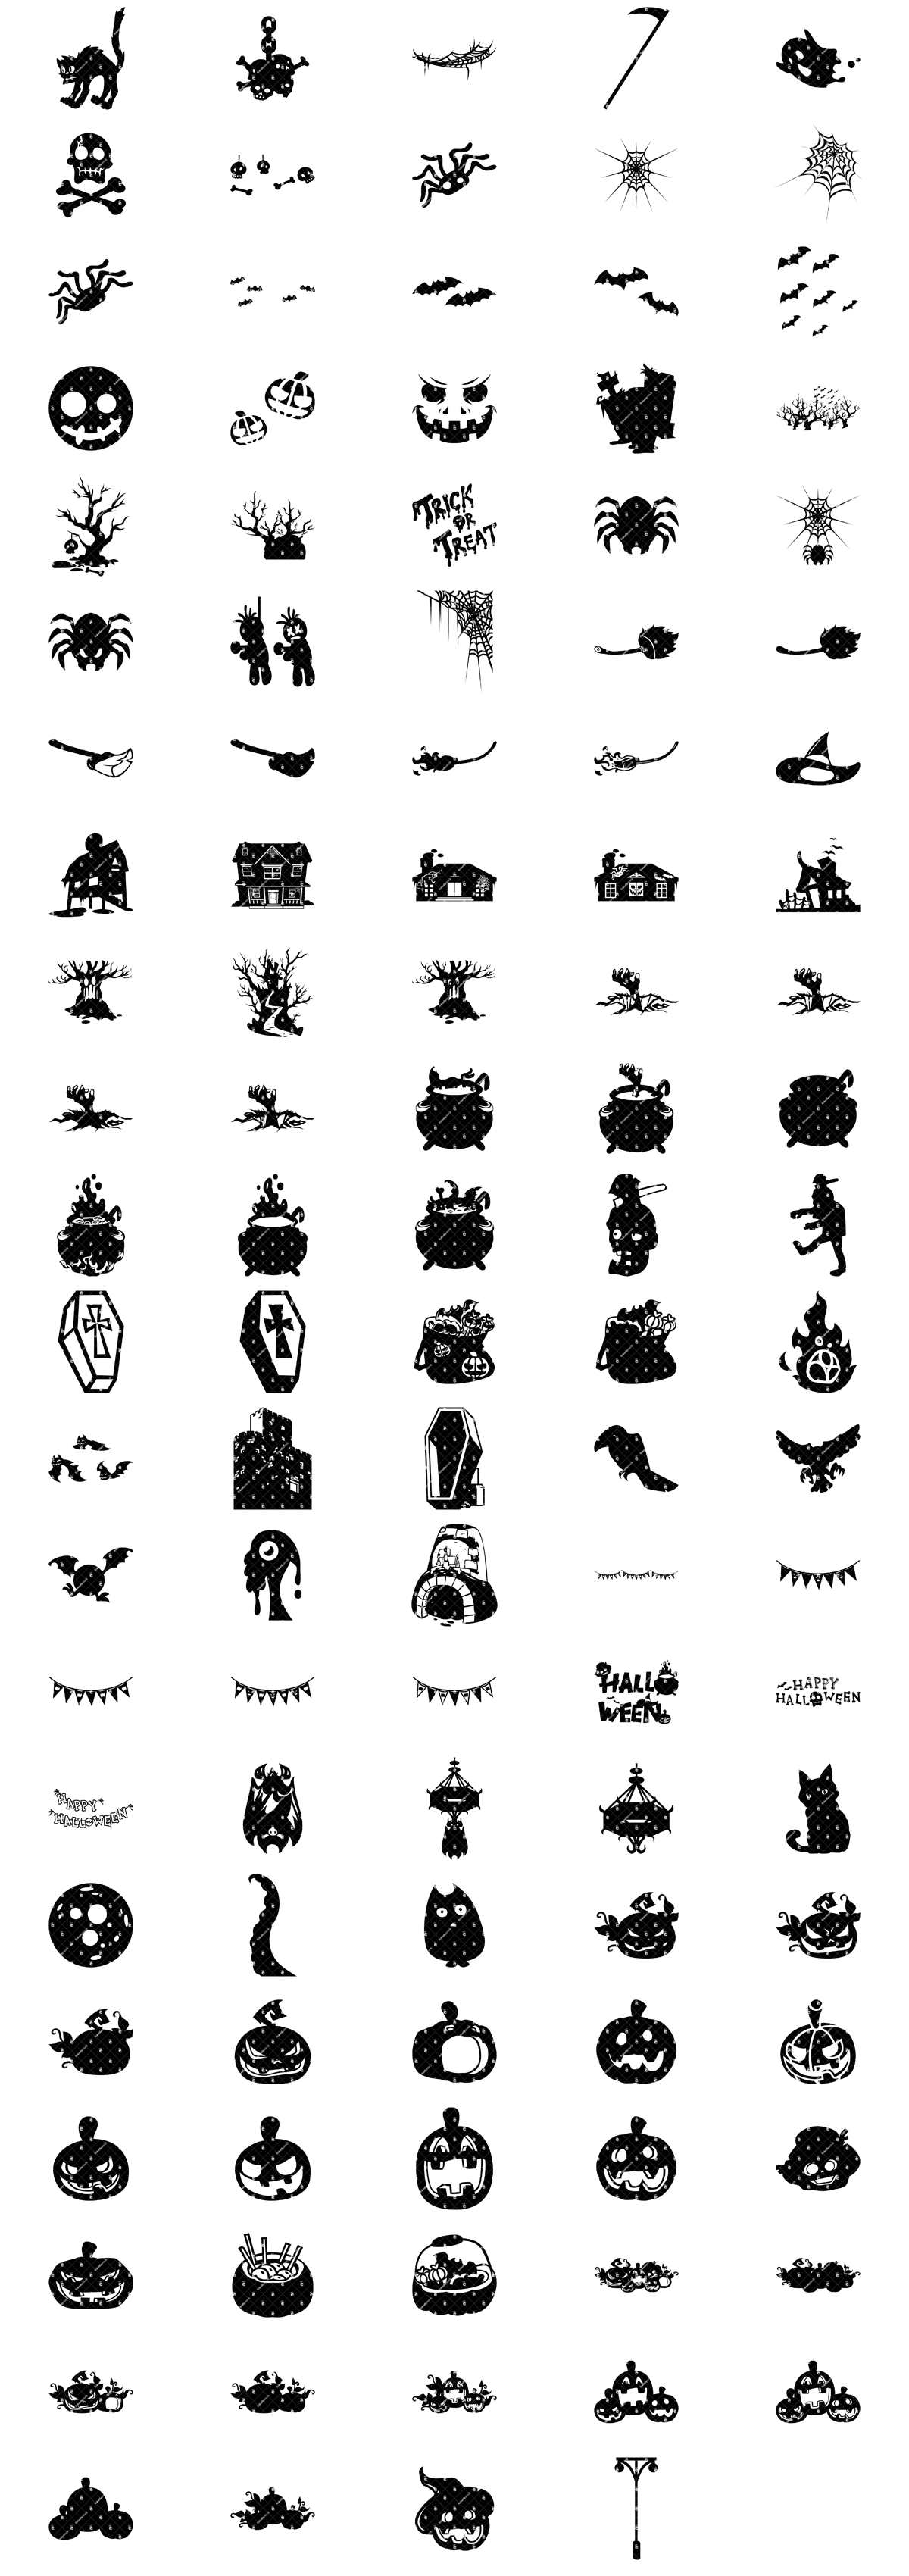 Halloween Themed Objects And Items Silhouettes